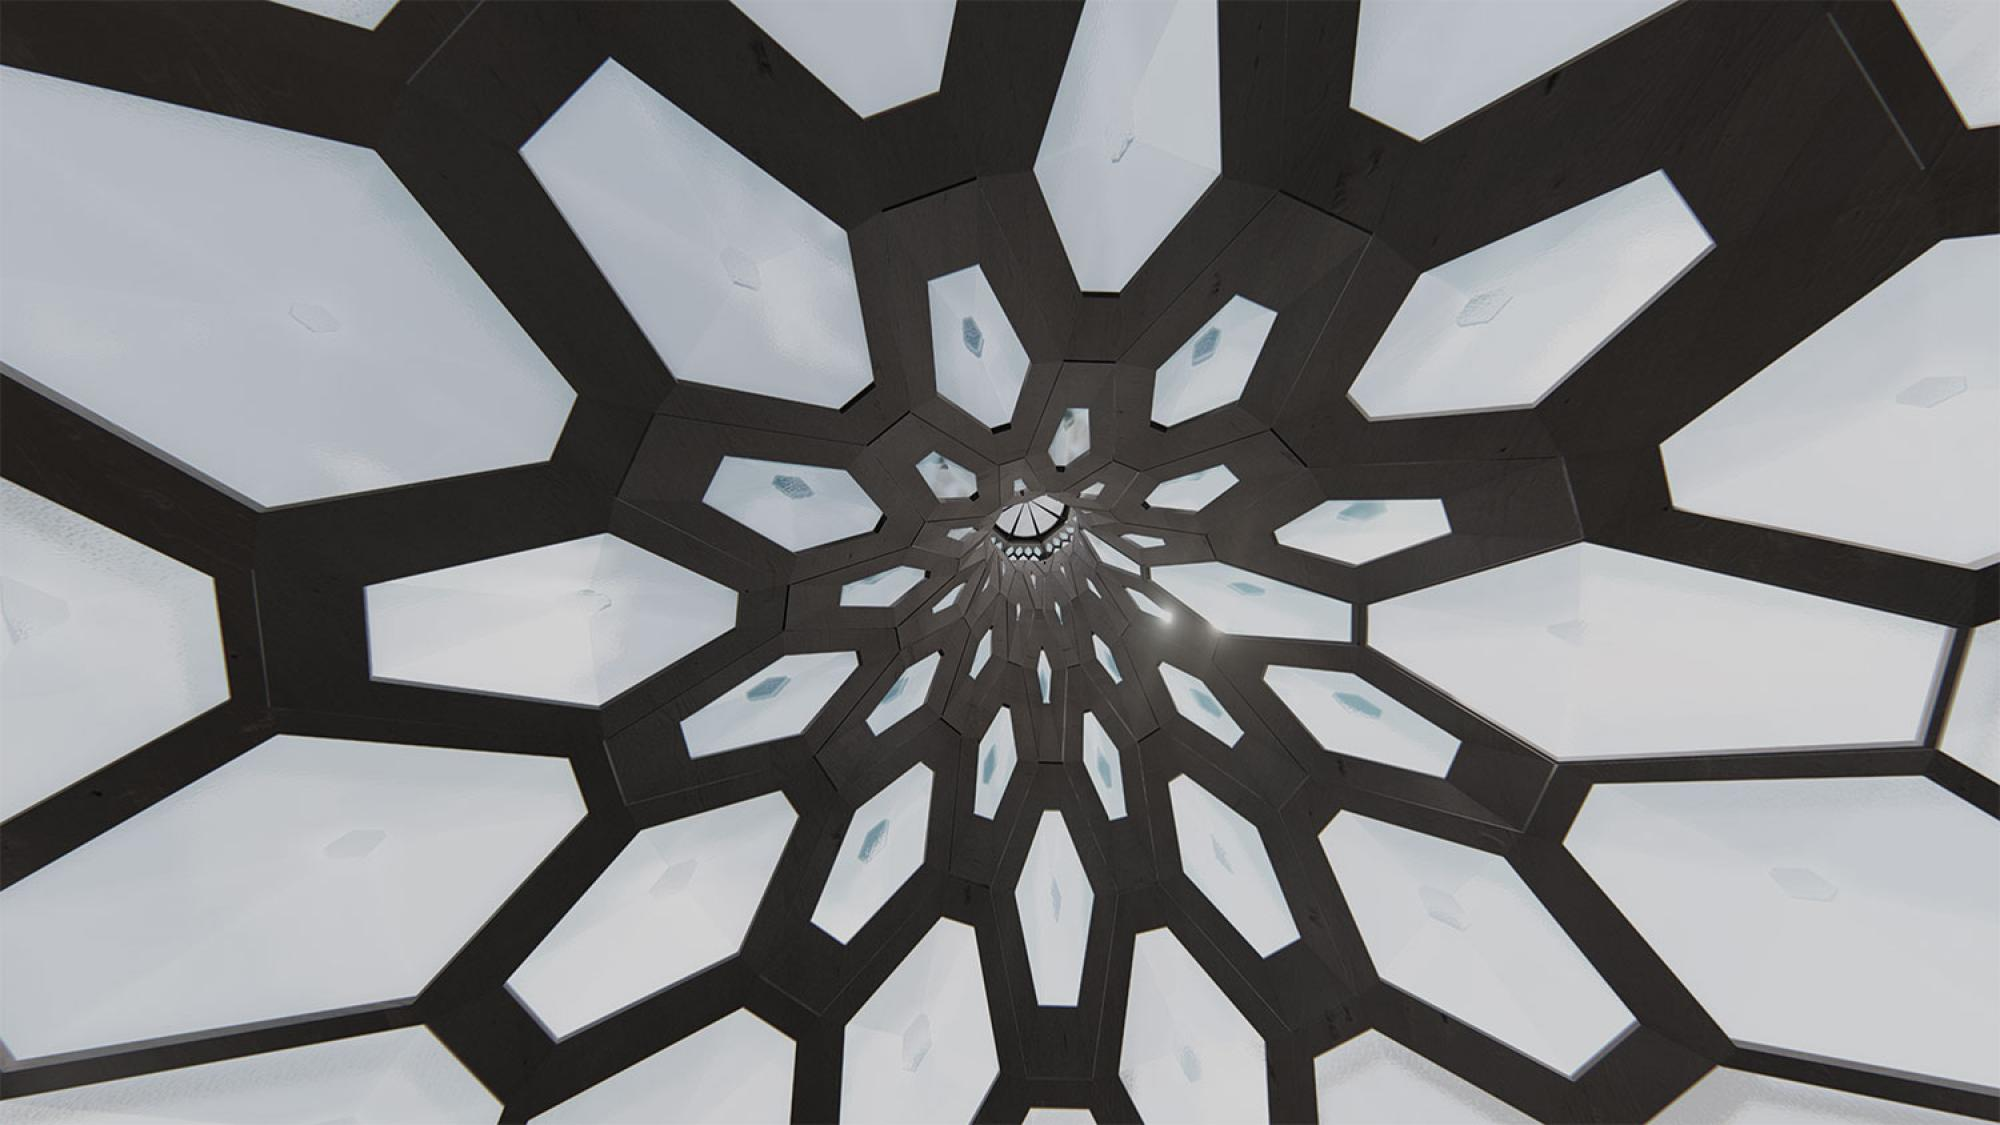 Adaptive Cooling and Daylighting Roof Aperture System, by Maryam Moradnejad